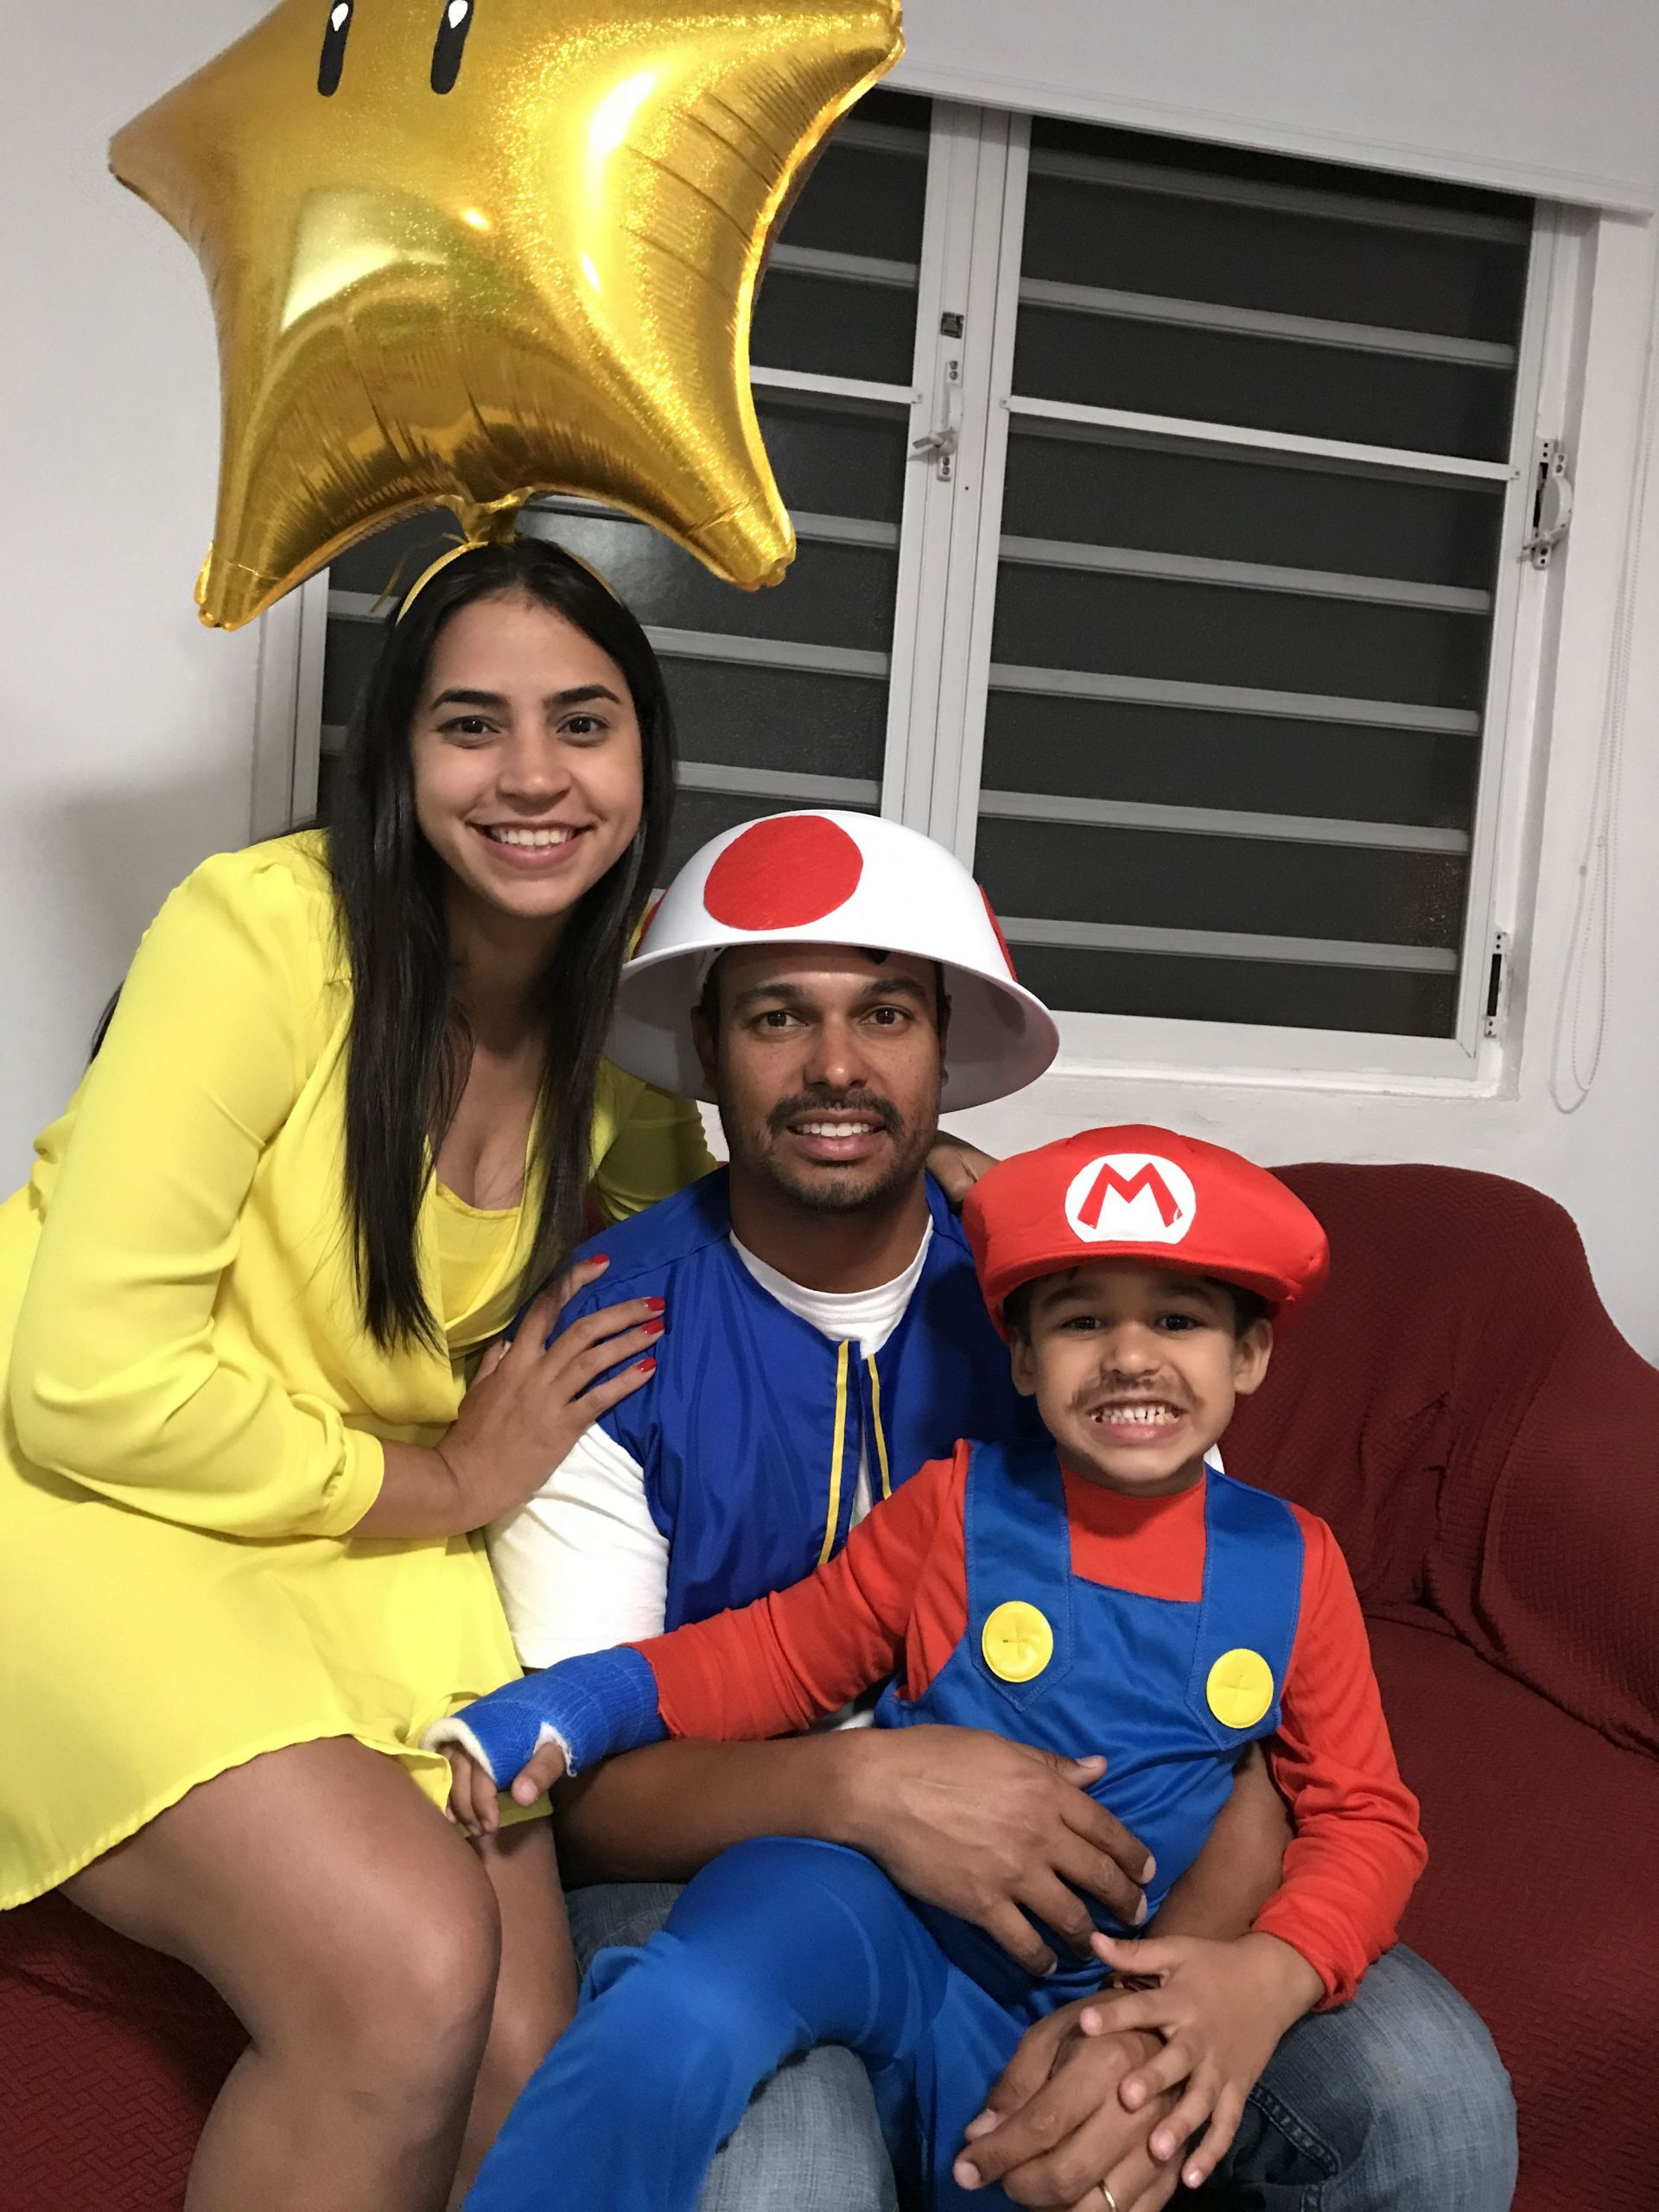 Super Mario Costume DIY  DIY Super Mario family family diy costume